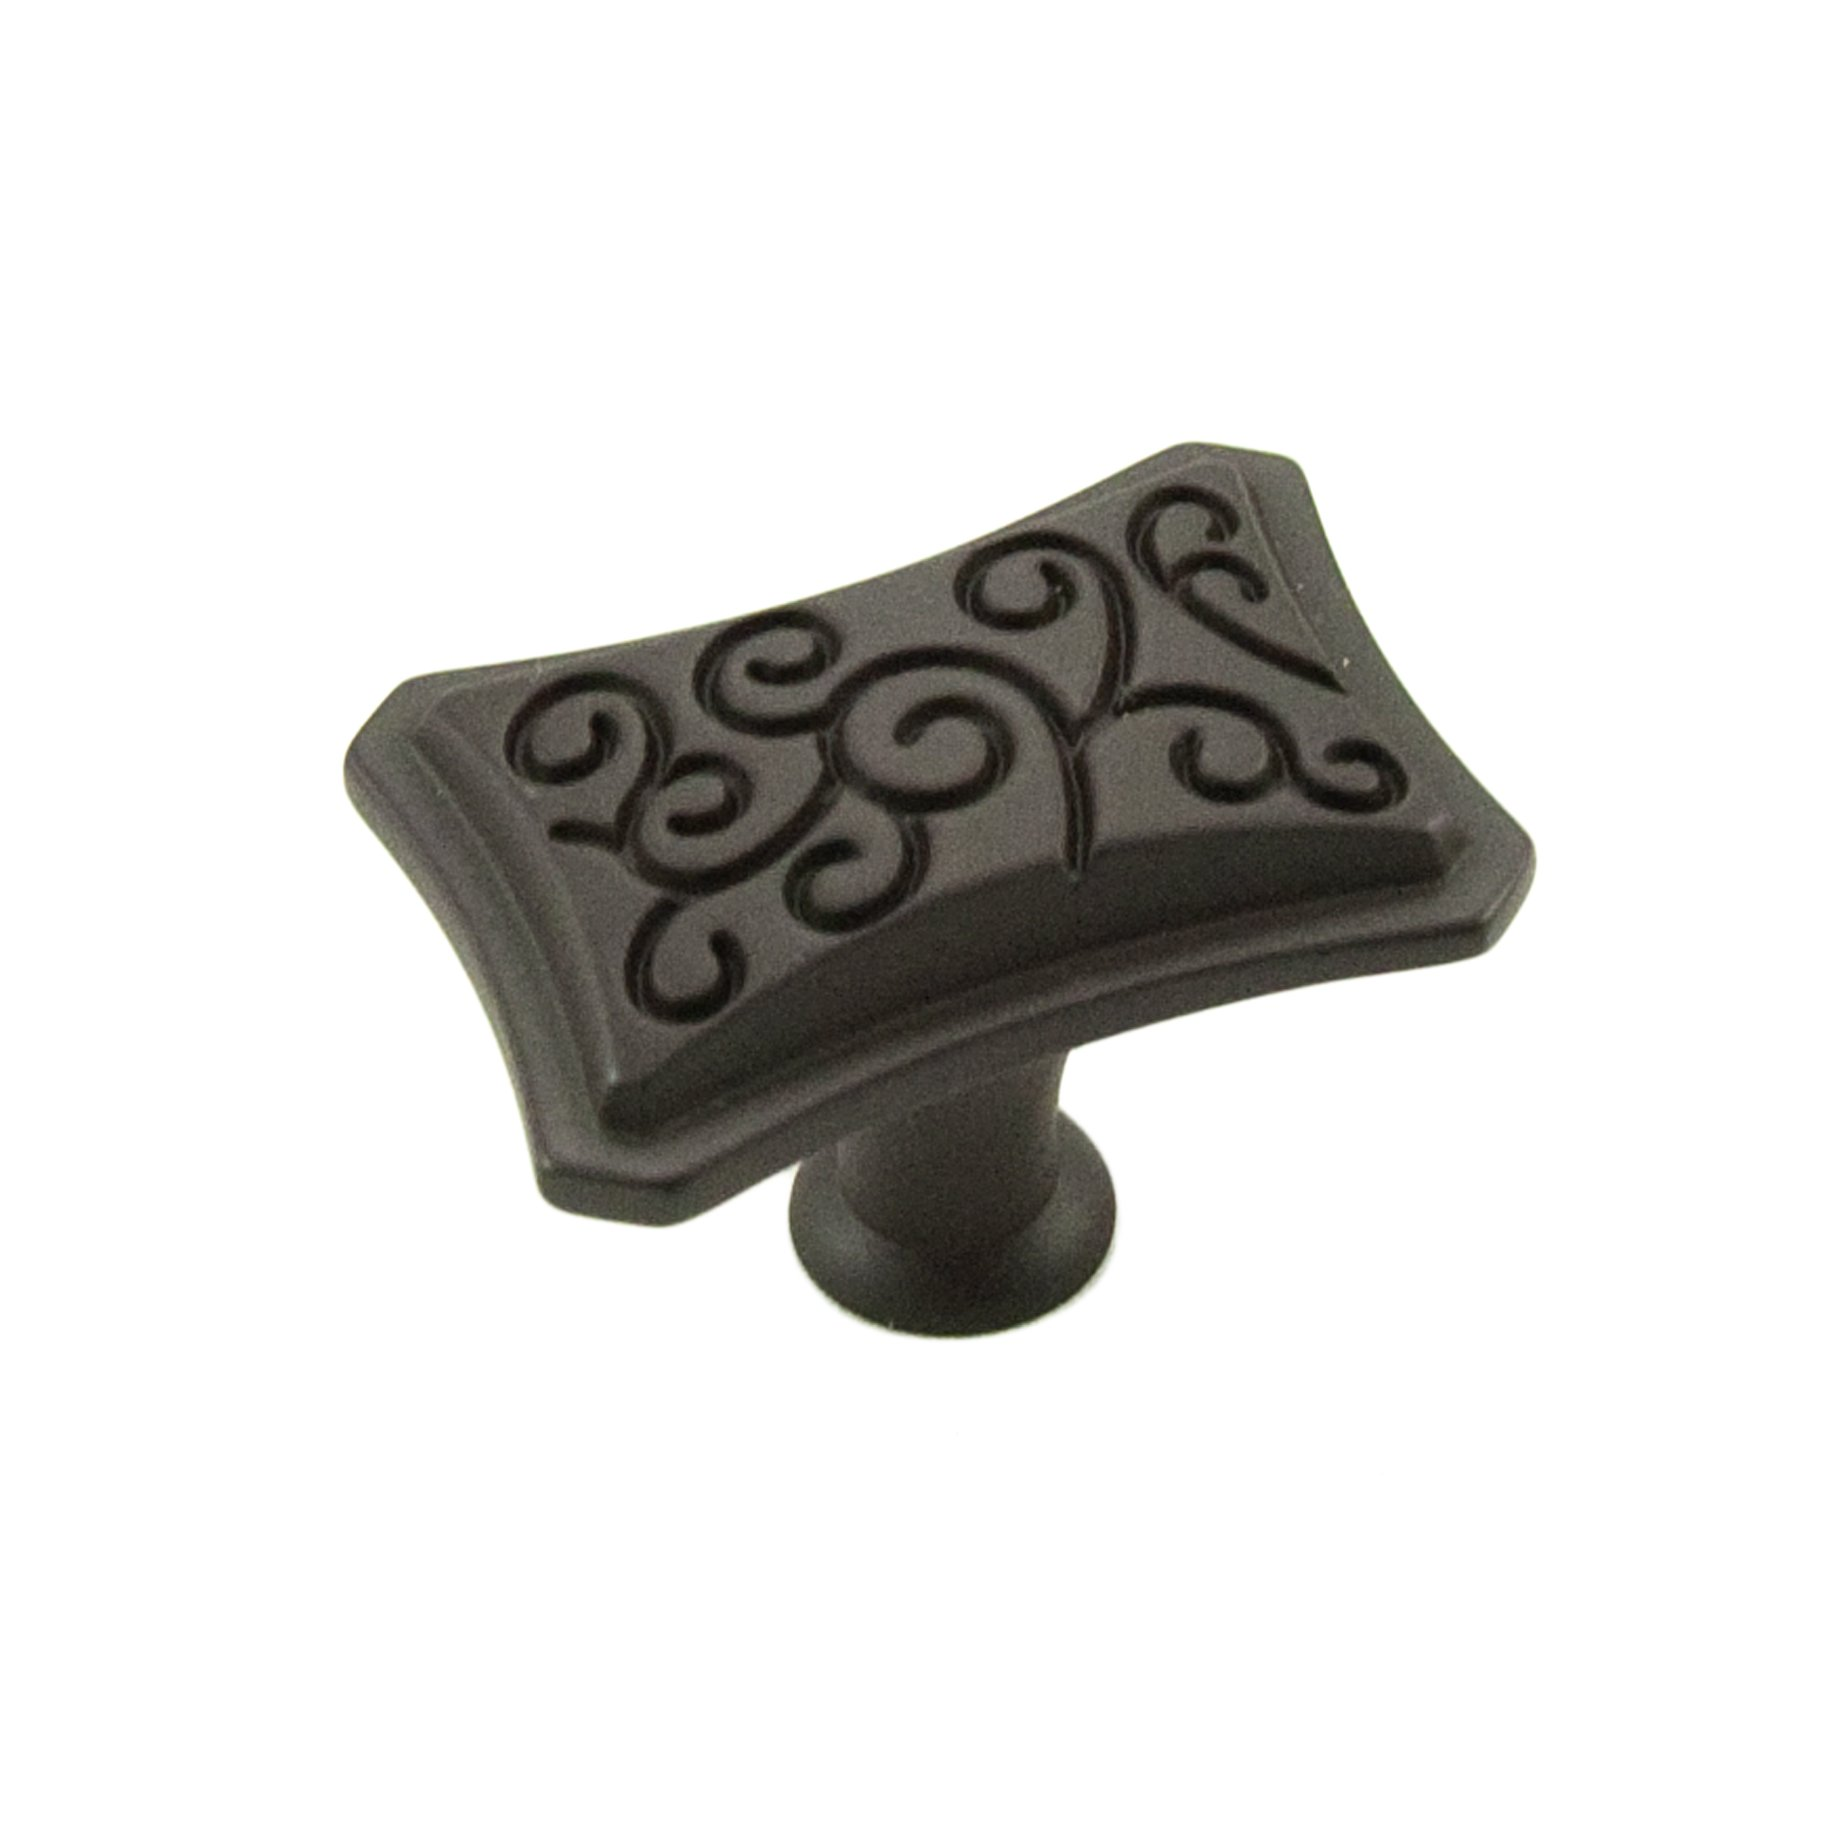 Rk international ck116 palermo octagon knob home by decor for Decor products international